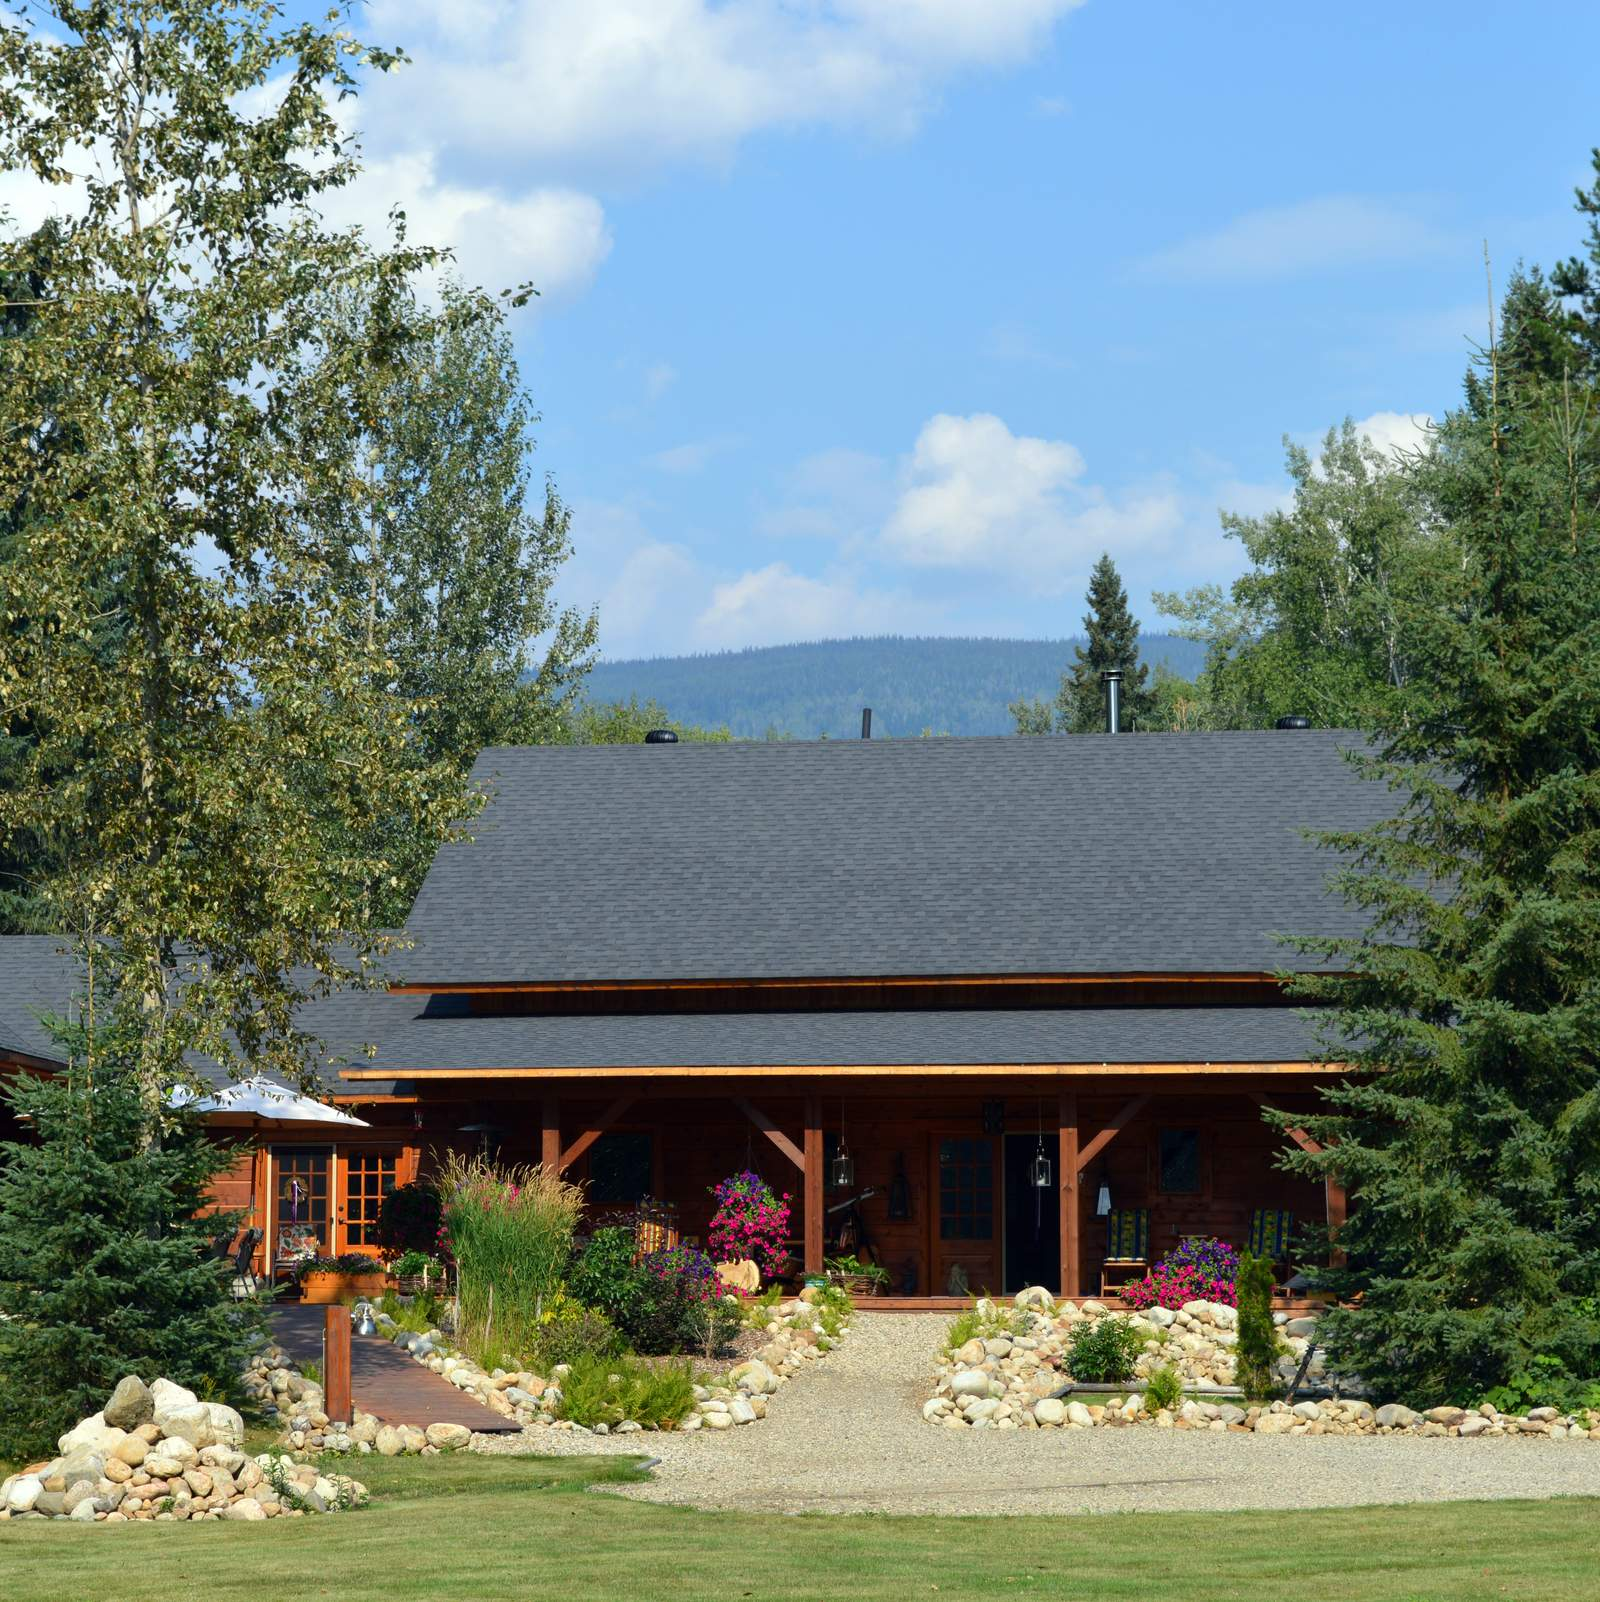 B & B: Moul Creek Lodge